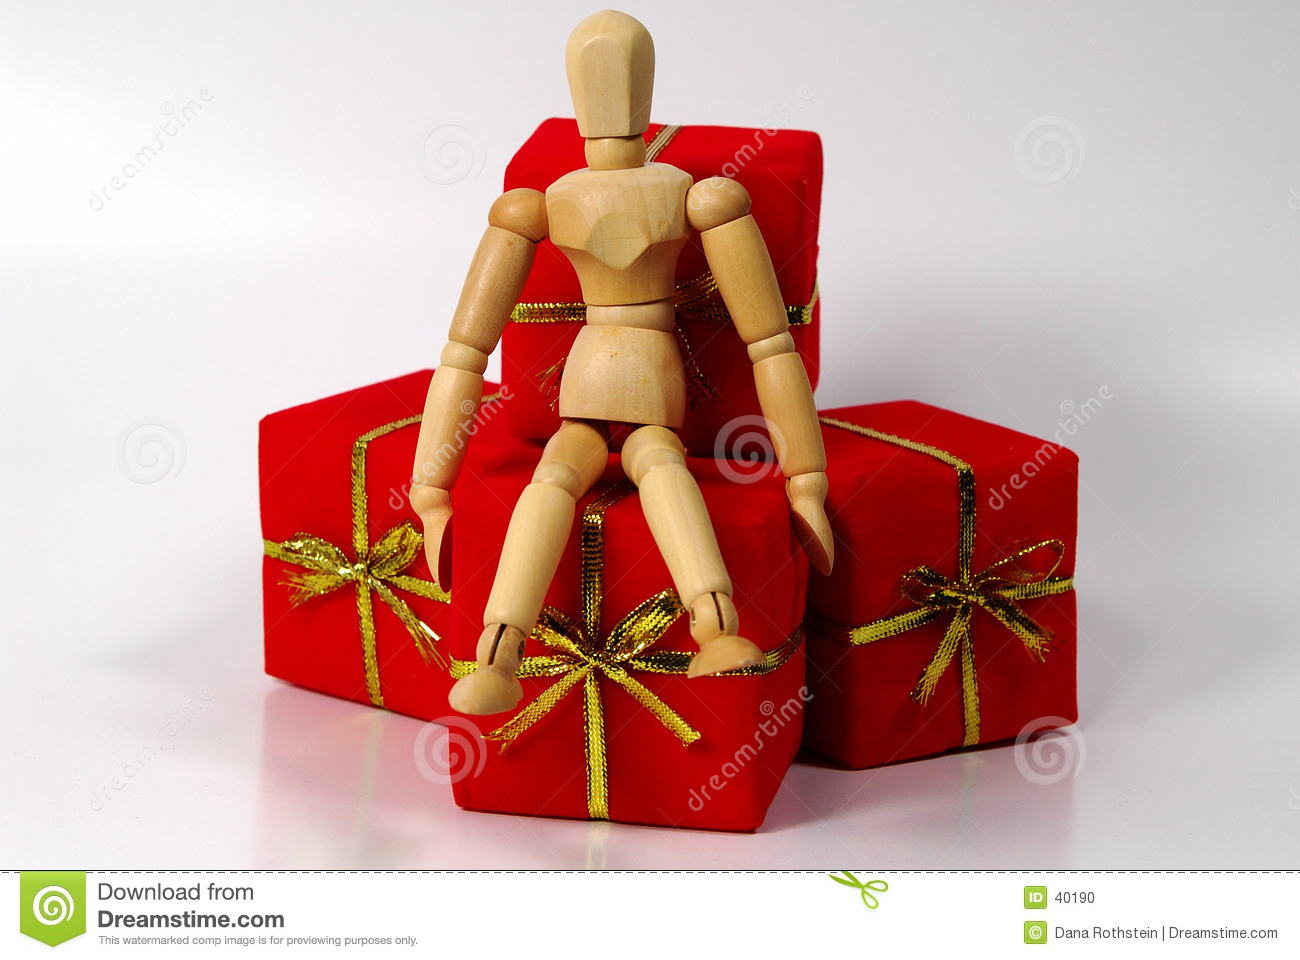 Mannequin With Gifts